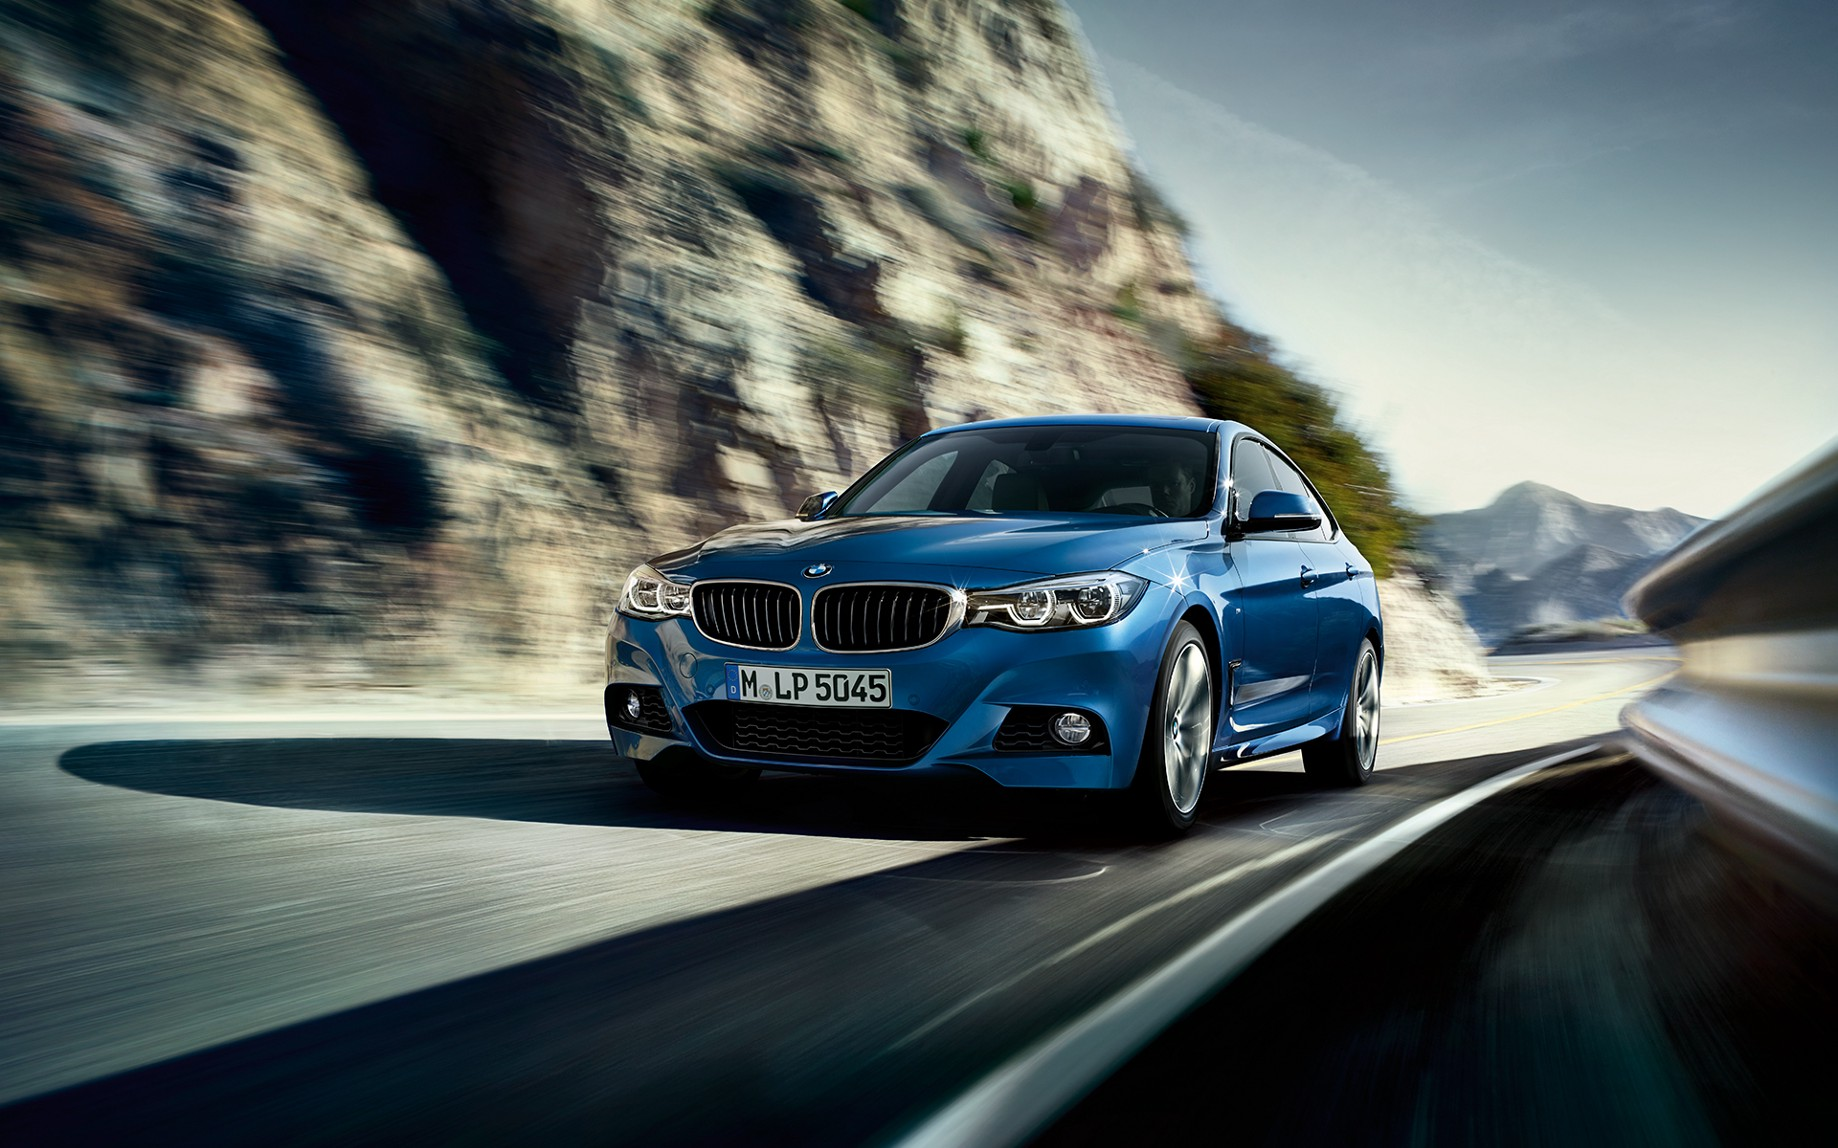 Bmw 3 Series Gt Sport Variant Now Available In India